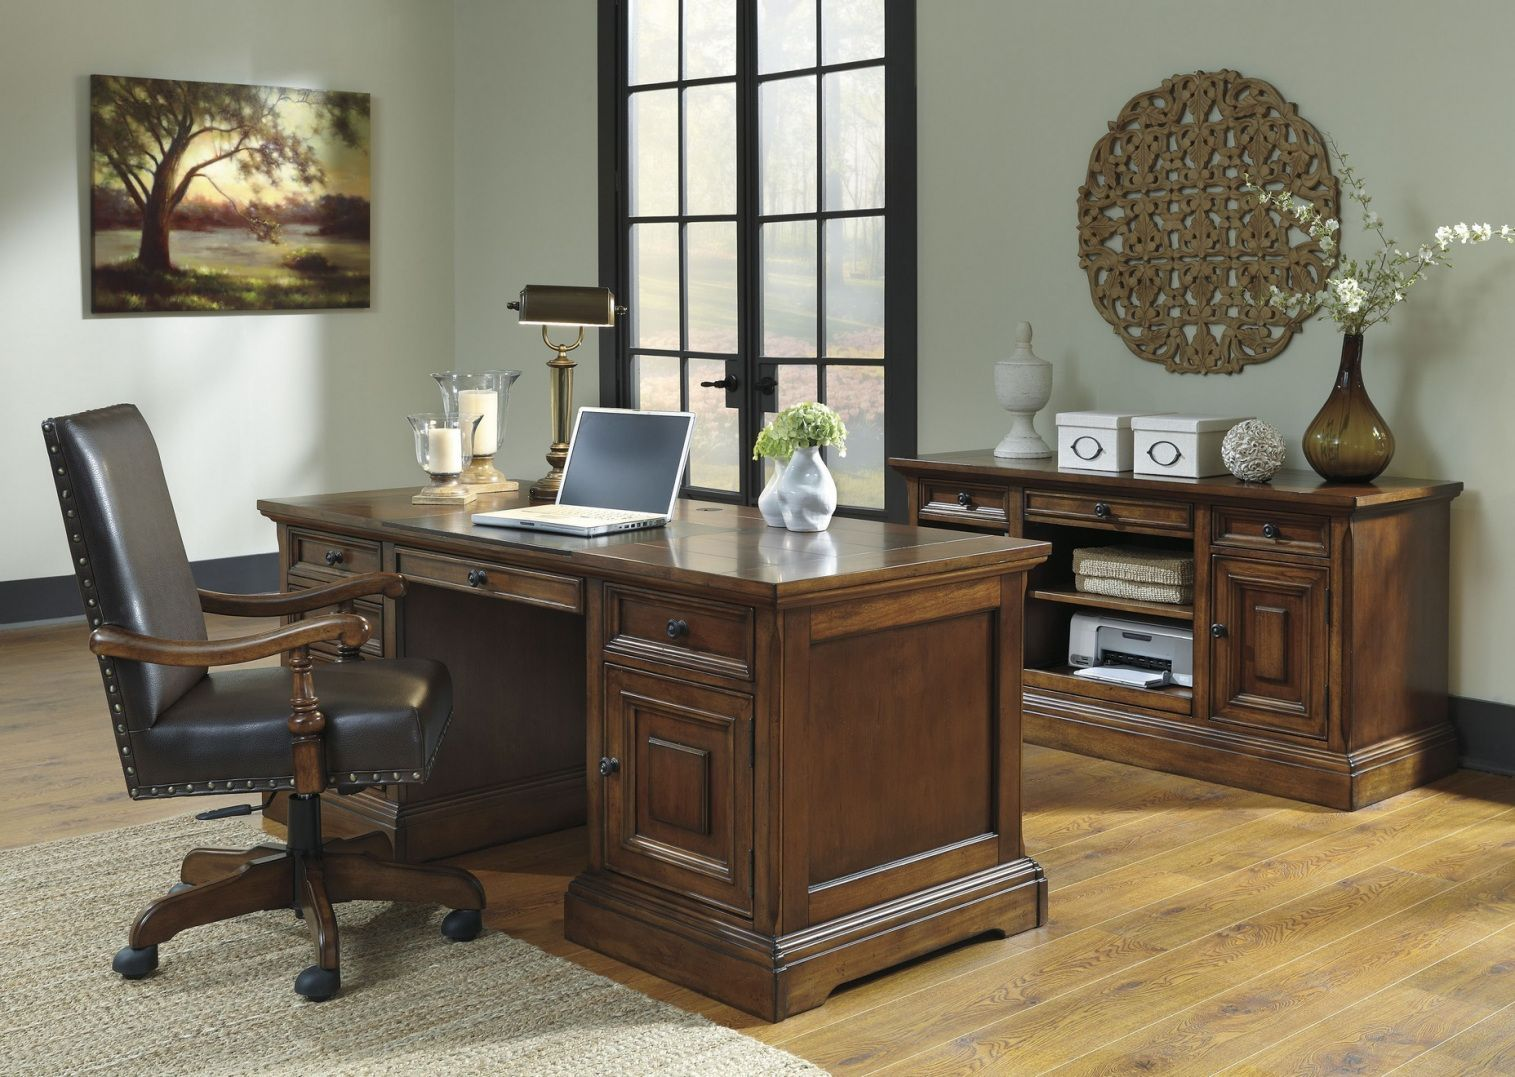 Ashley Furniture Home Office Desk Ideas Check More At Http Www Drjamesghoodblog